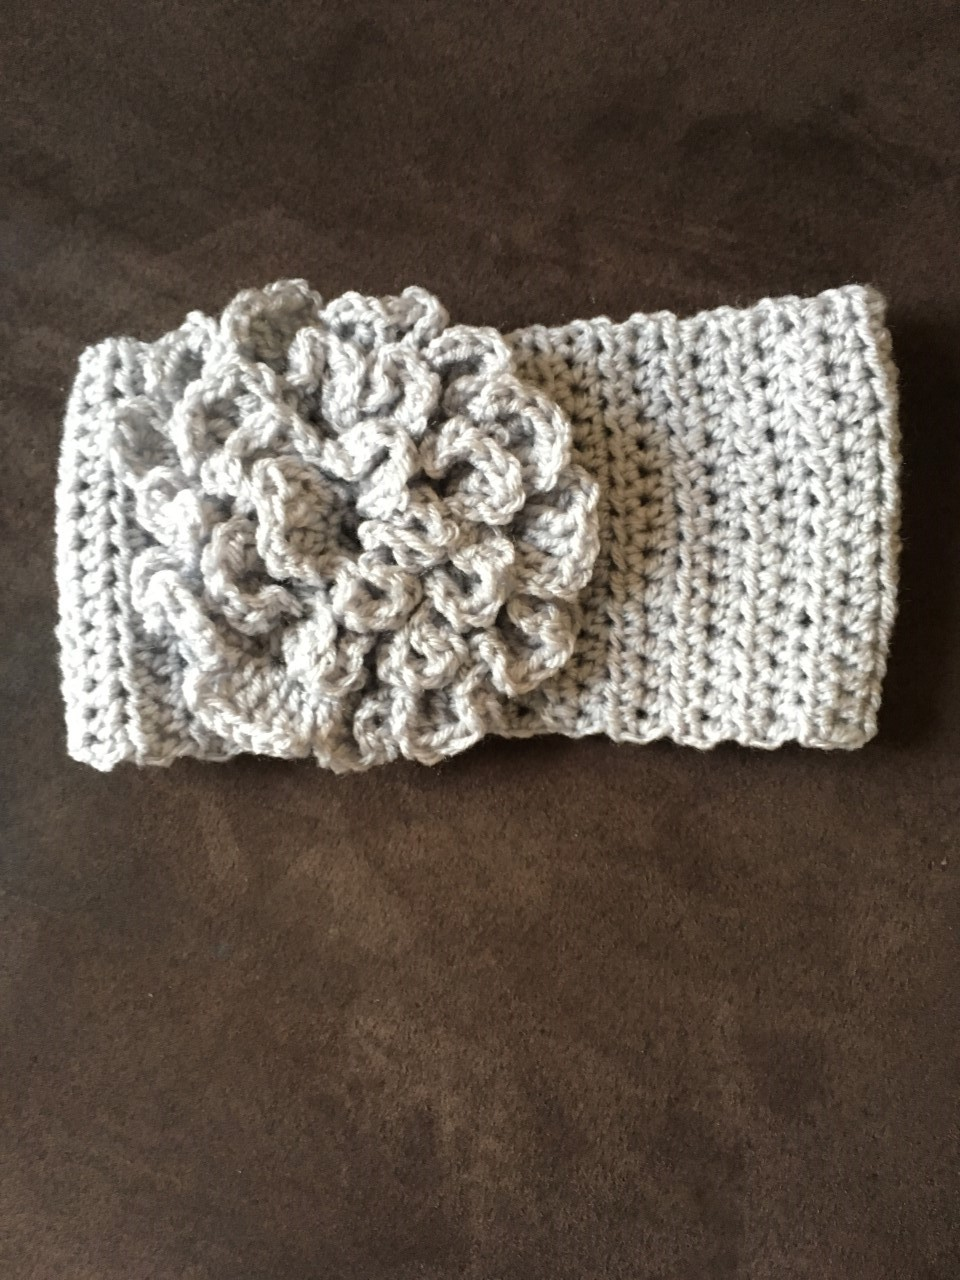 Free Crochet Pattern Headband With Flower : crochet headband with flower - FREE PATTERN & VIDEO